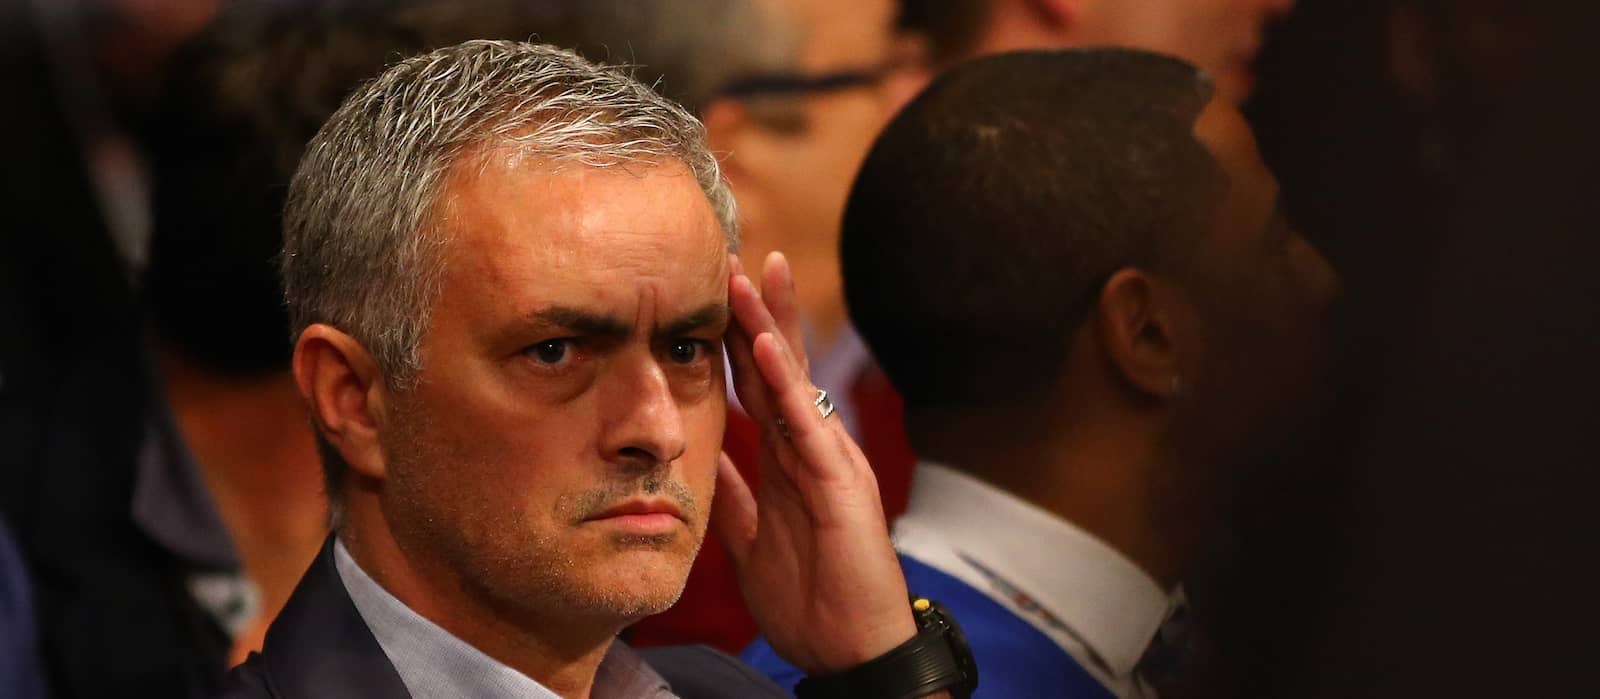 LIVE: Man United news, transfers and gossip – Mourinho future to be decided this week